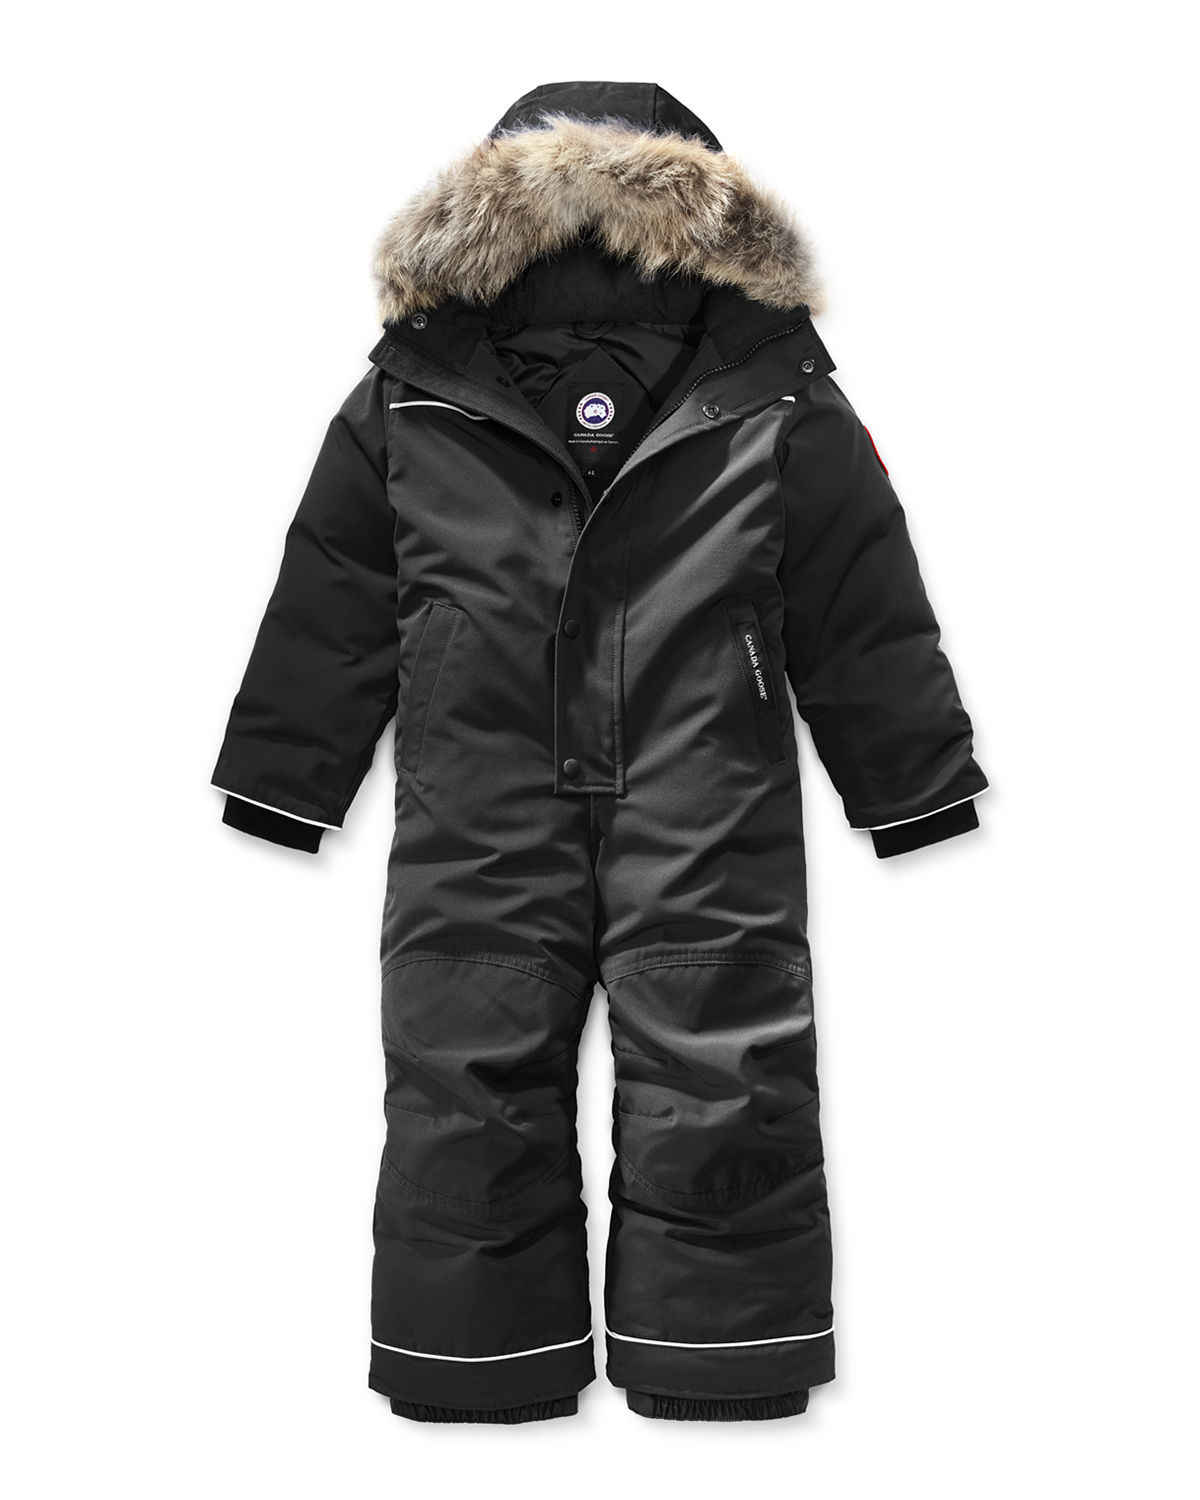 Grizzly Hooded Snowsuit, Size 2-7